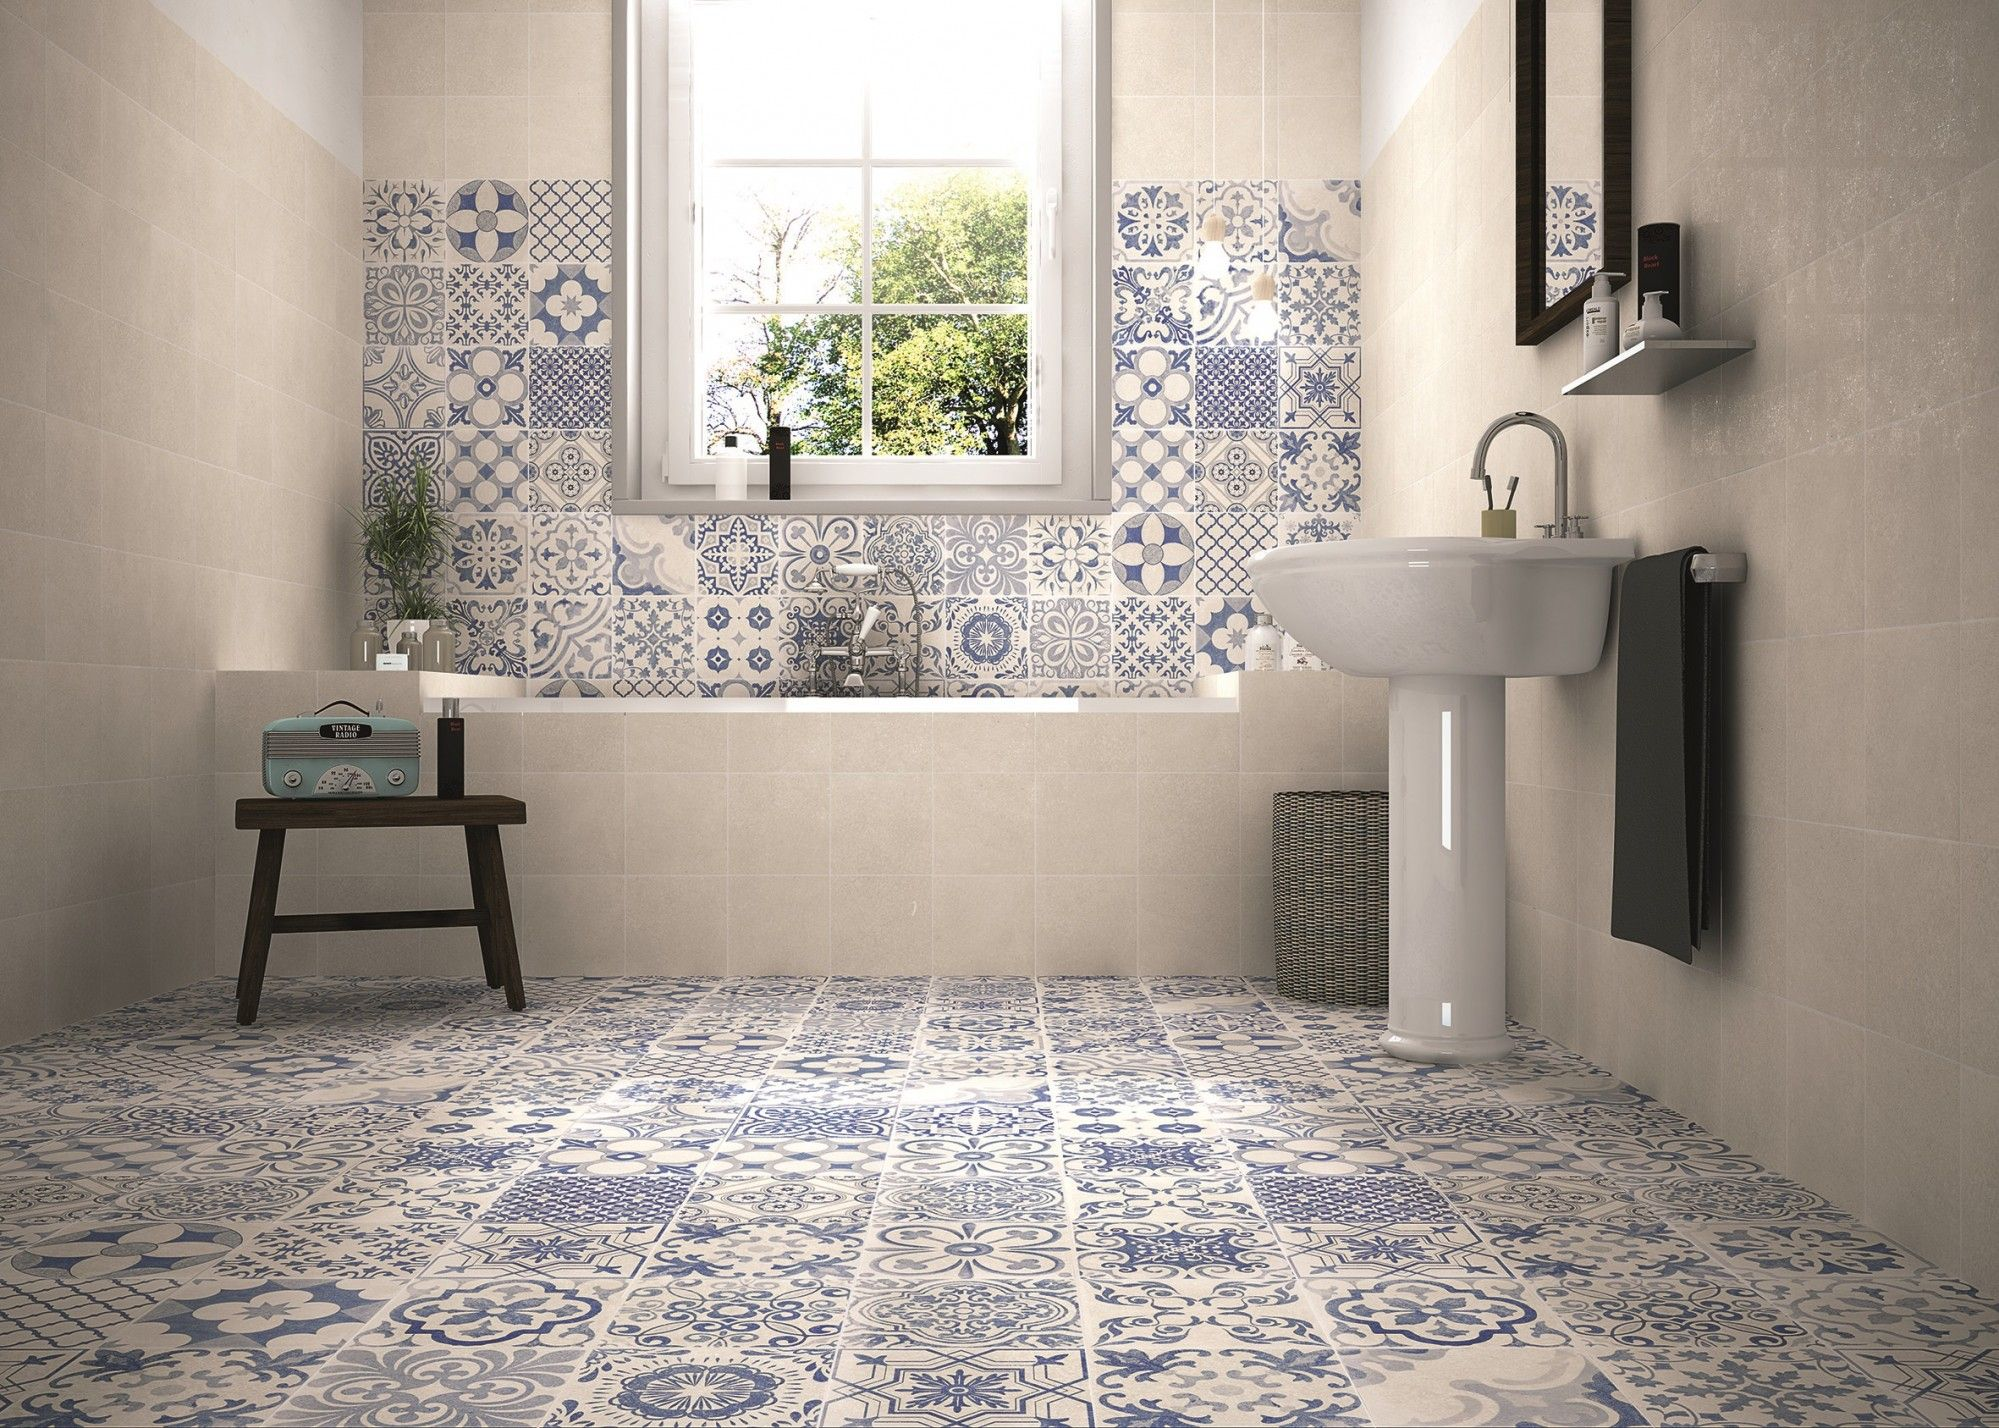 Charming Blue Patterned Bathroom Tiles Part - 4: Skyros Delft Blue Wall And Floor Tile